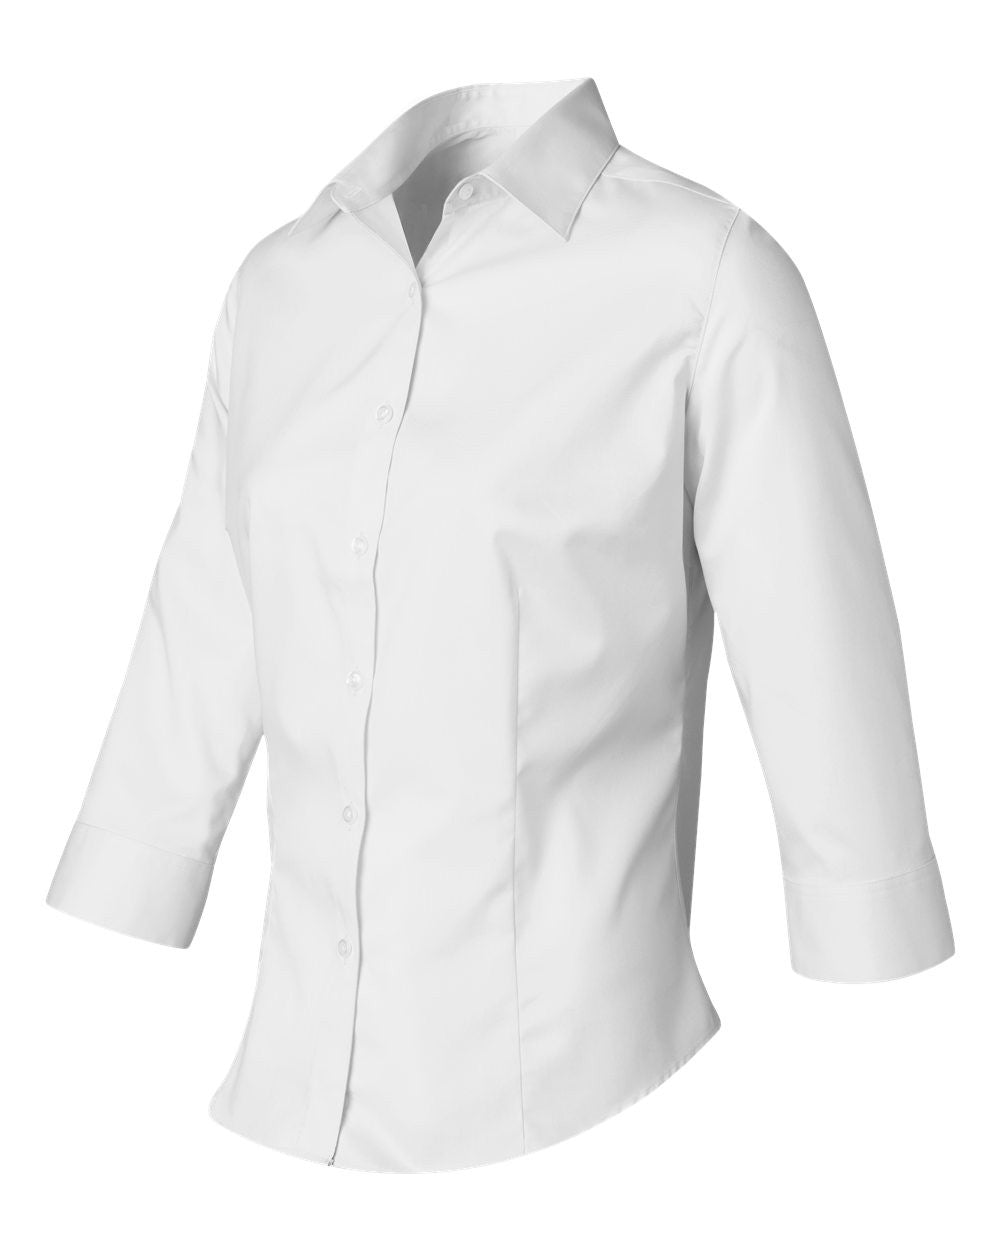 3/4 Sleeve Button down dress shirts by Van Heusen